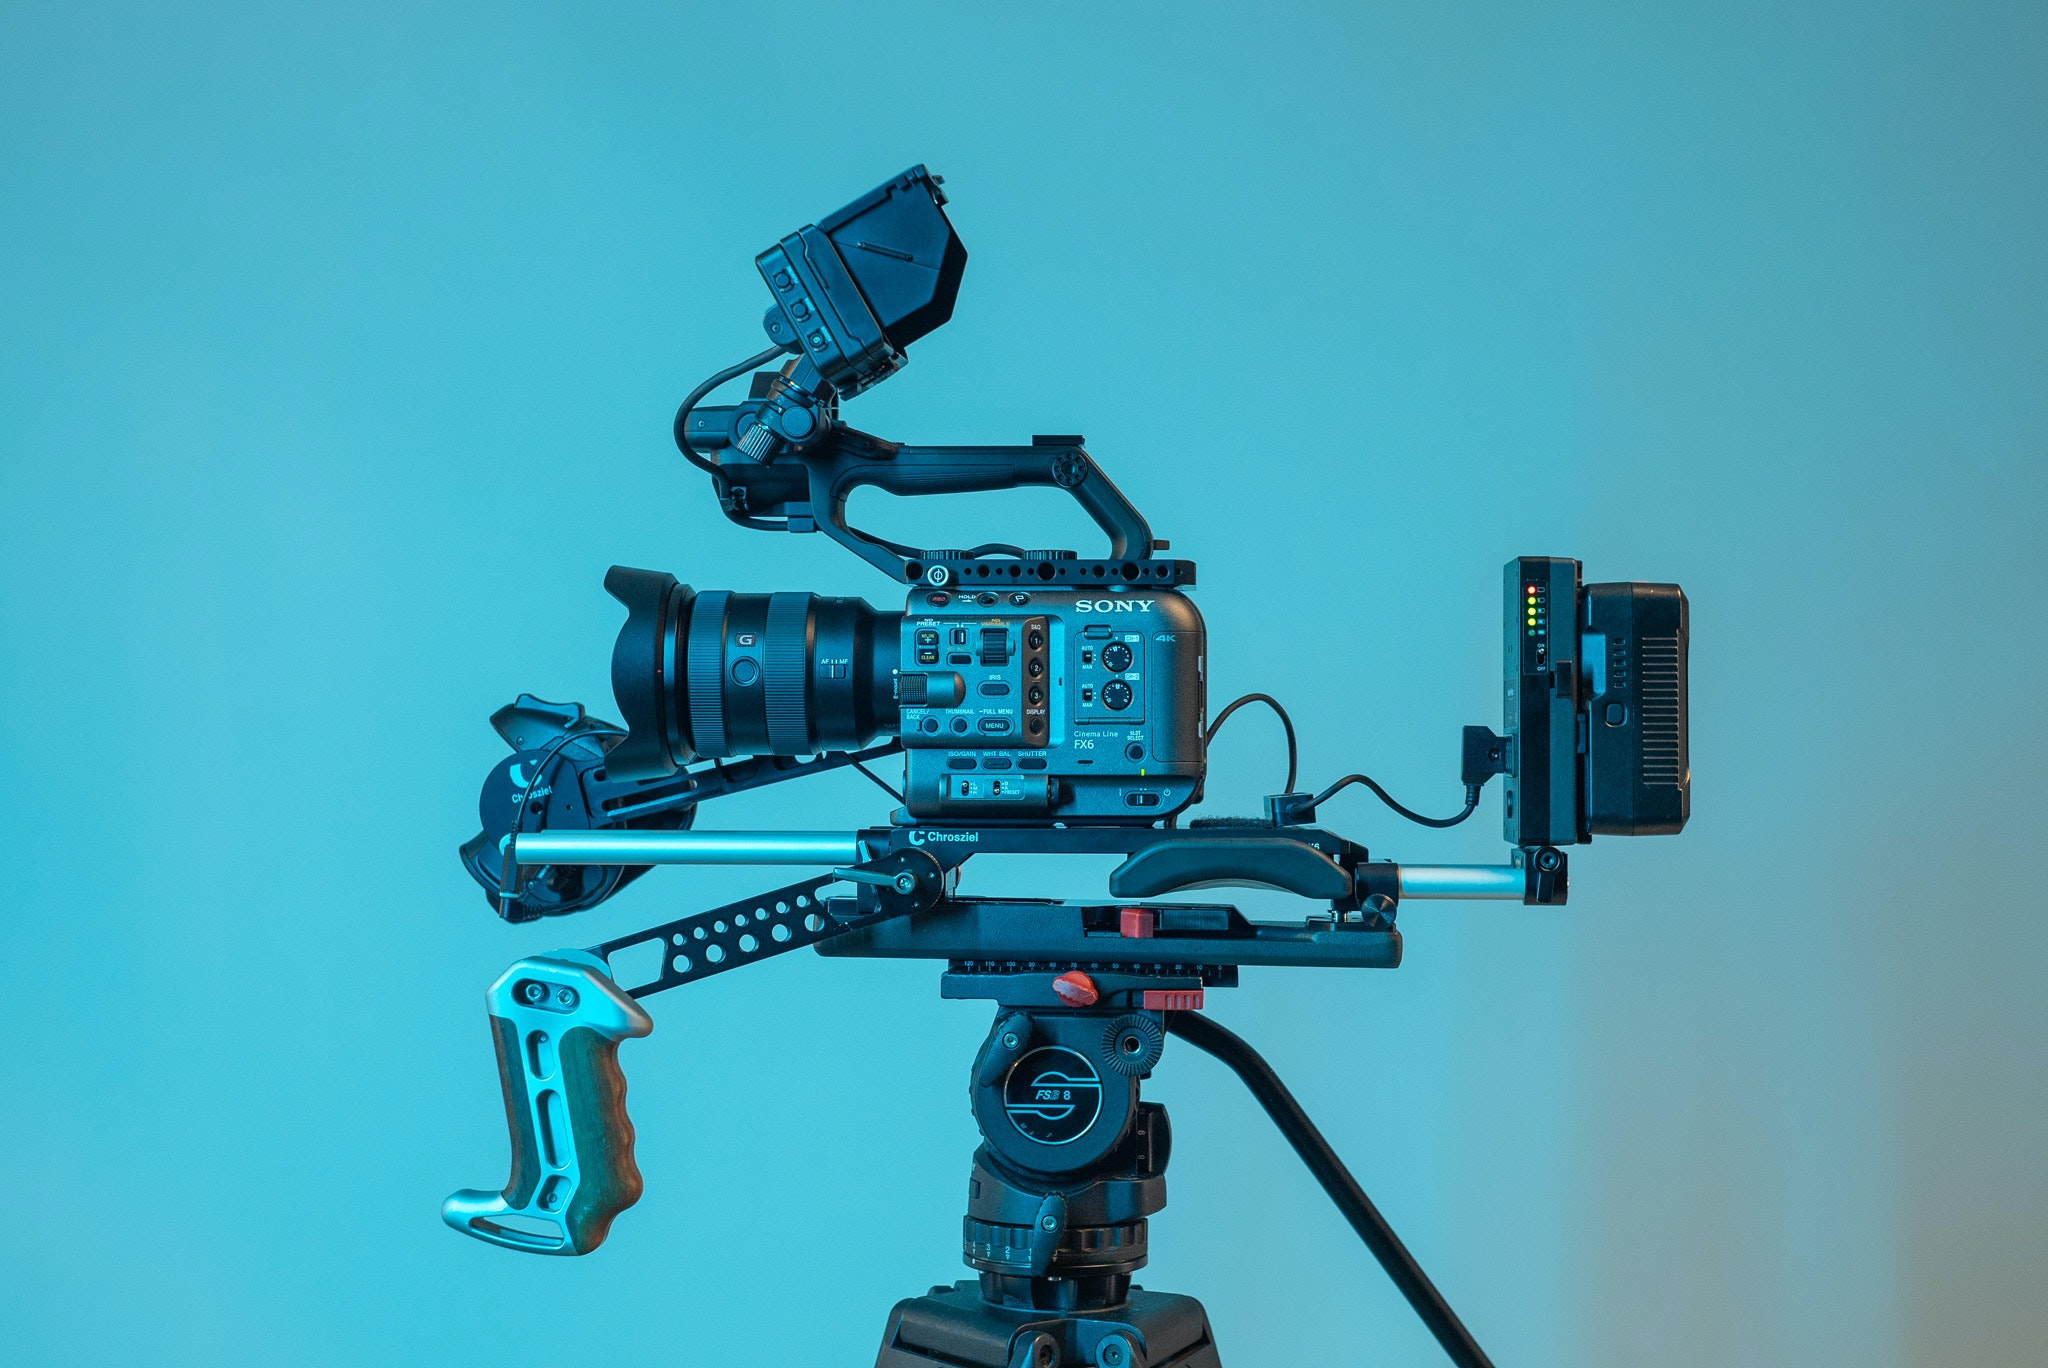 Rigged FX6 with V-mount ready to support external monitor and wireless image transmission